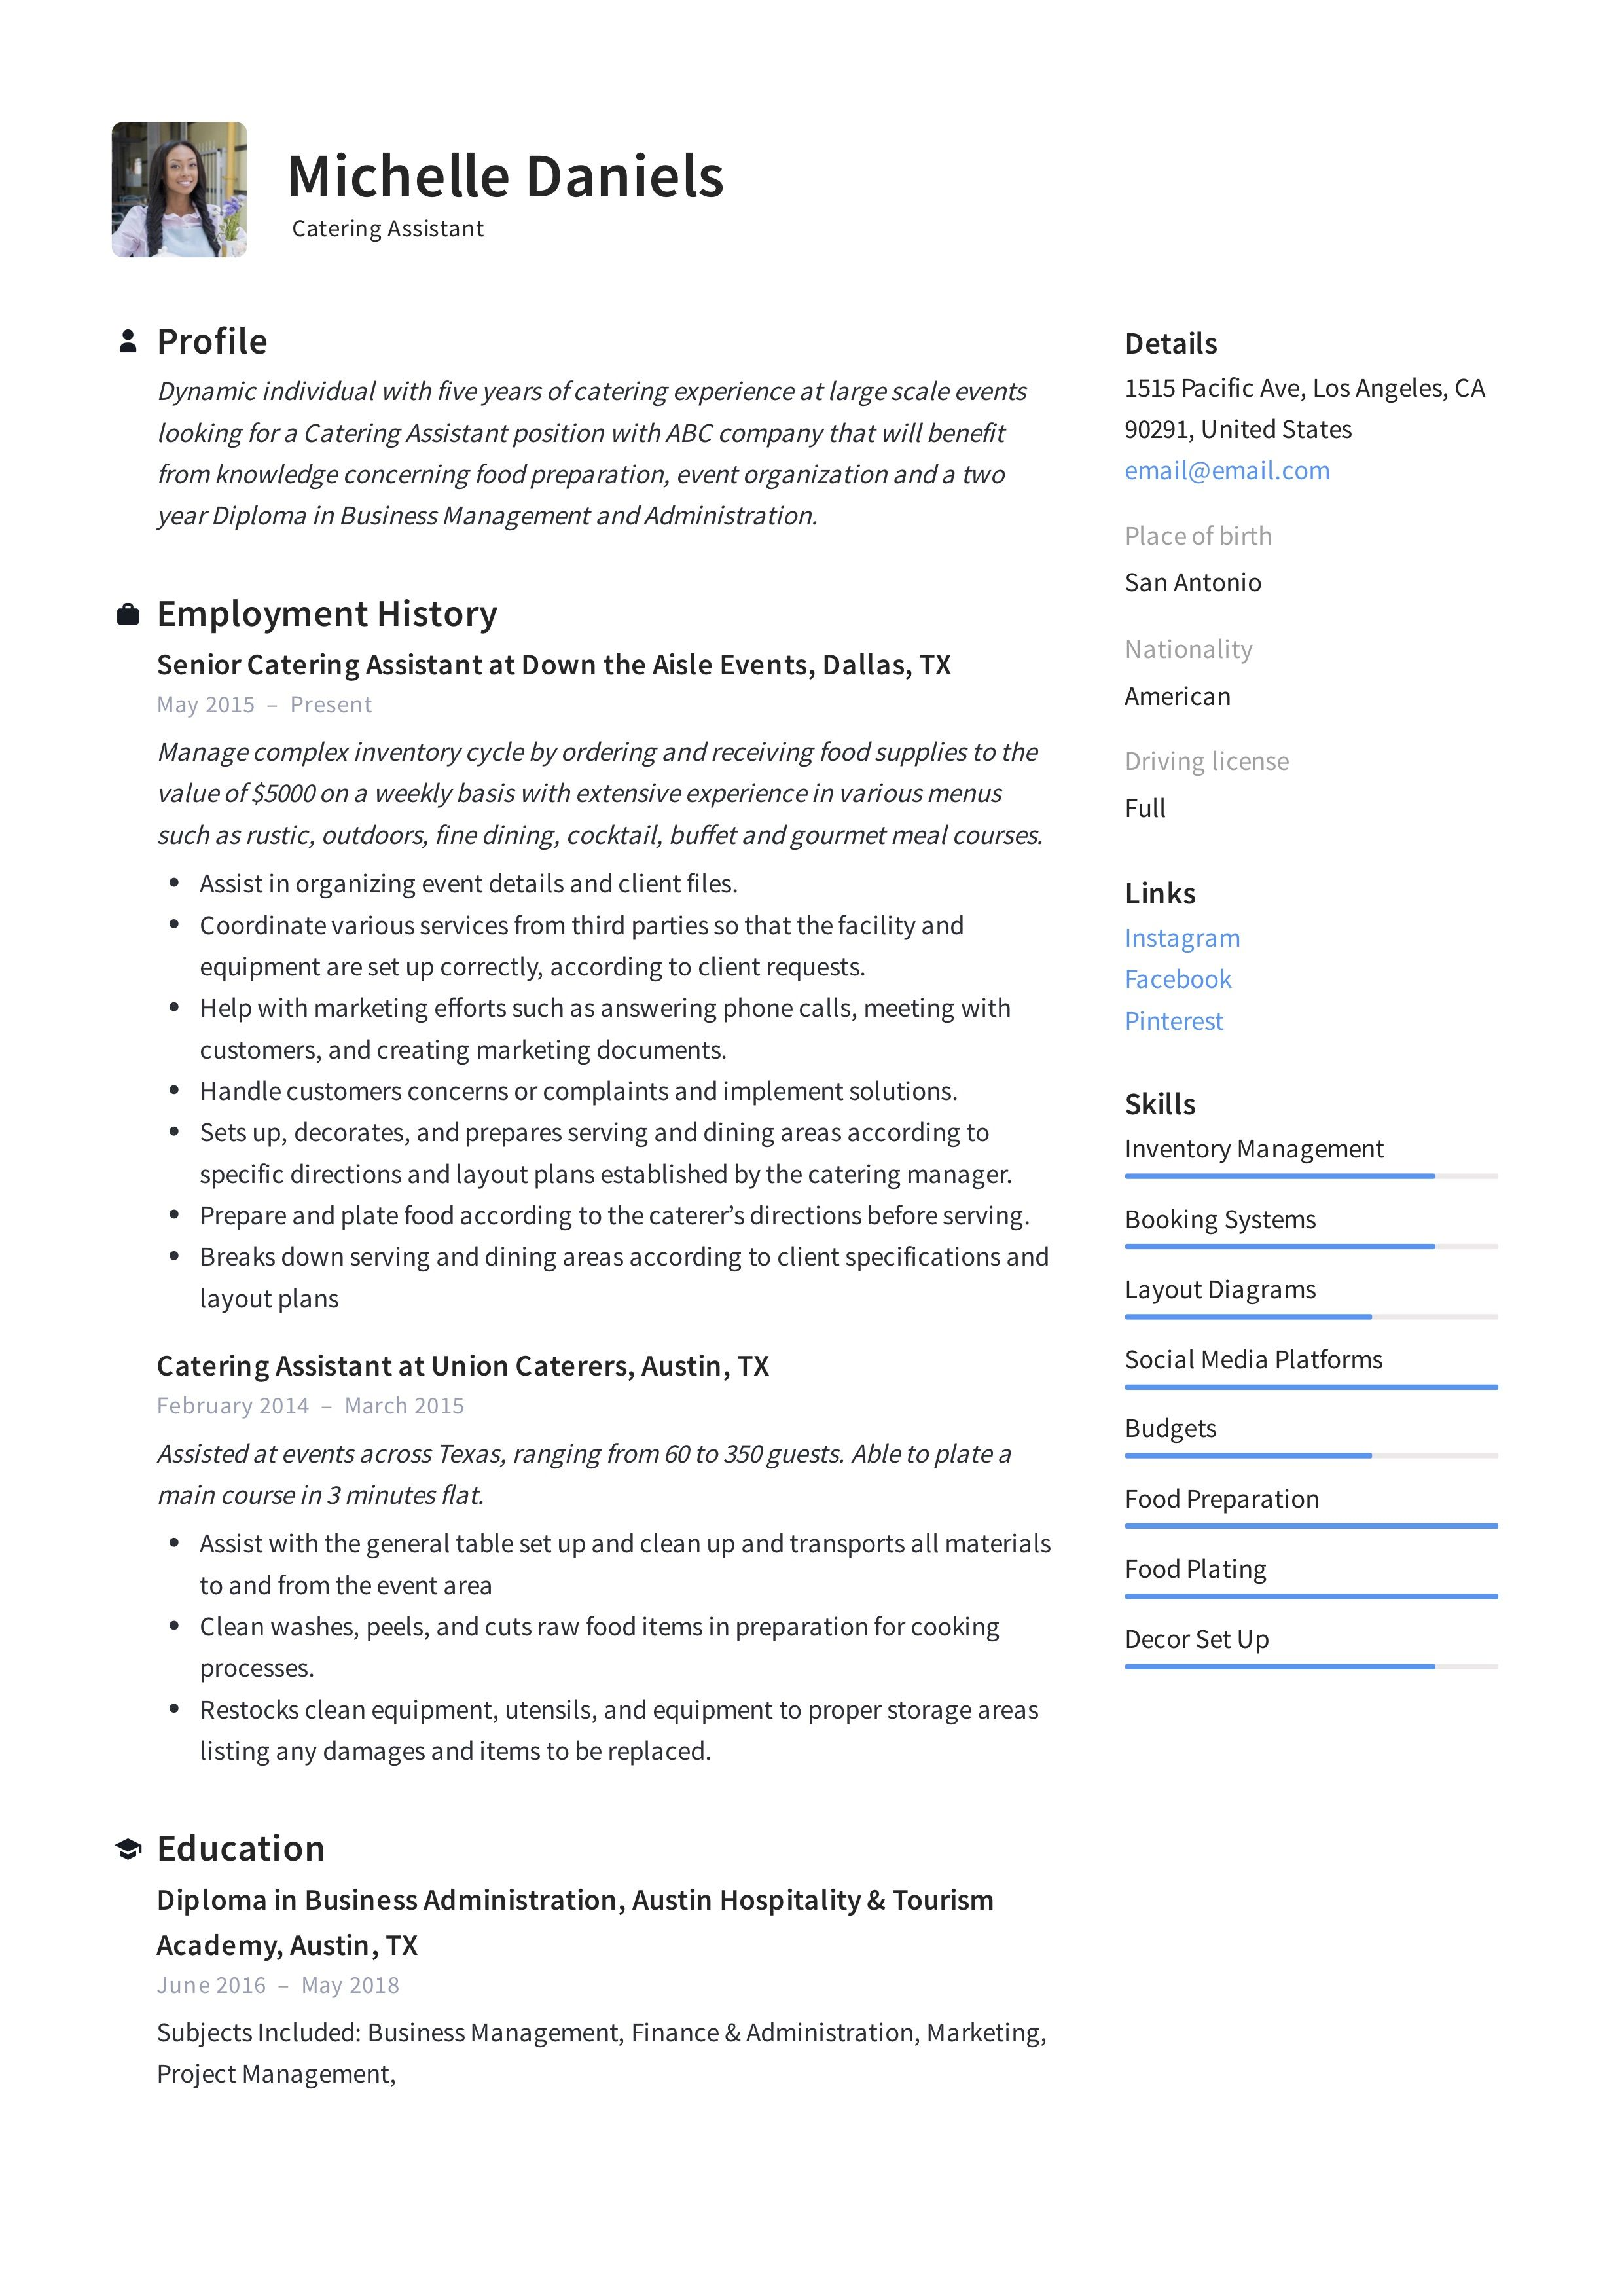 Catering assistant resume template in 2020 assistant